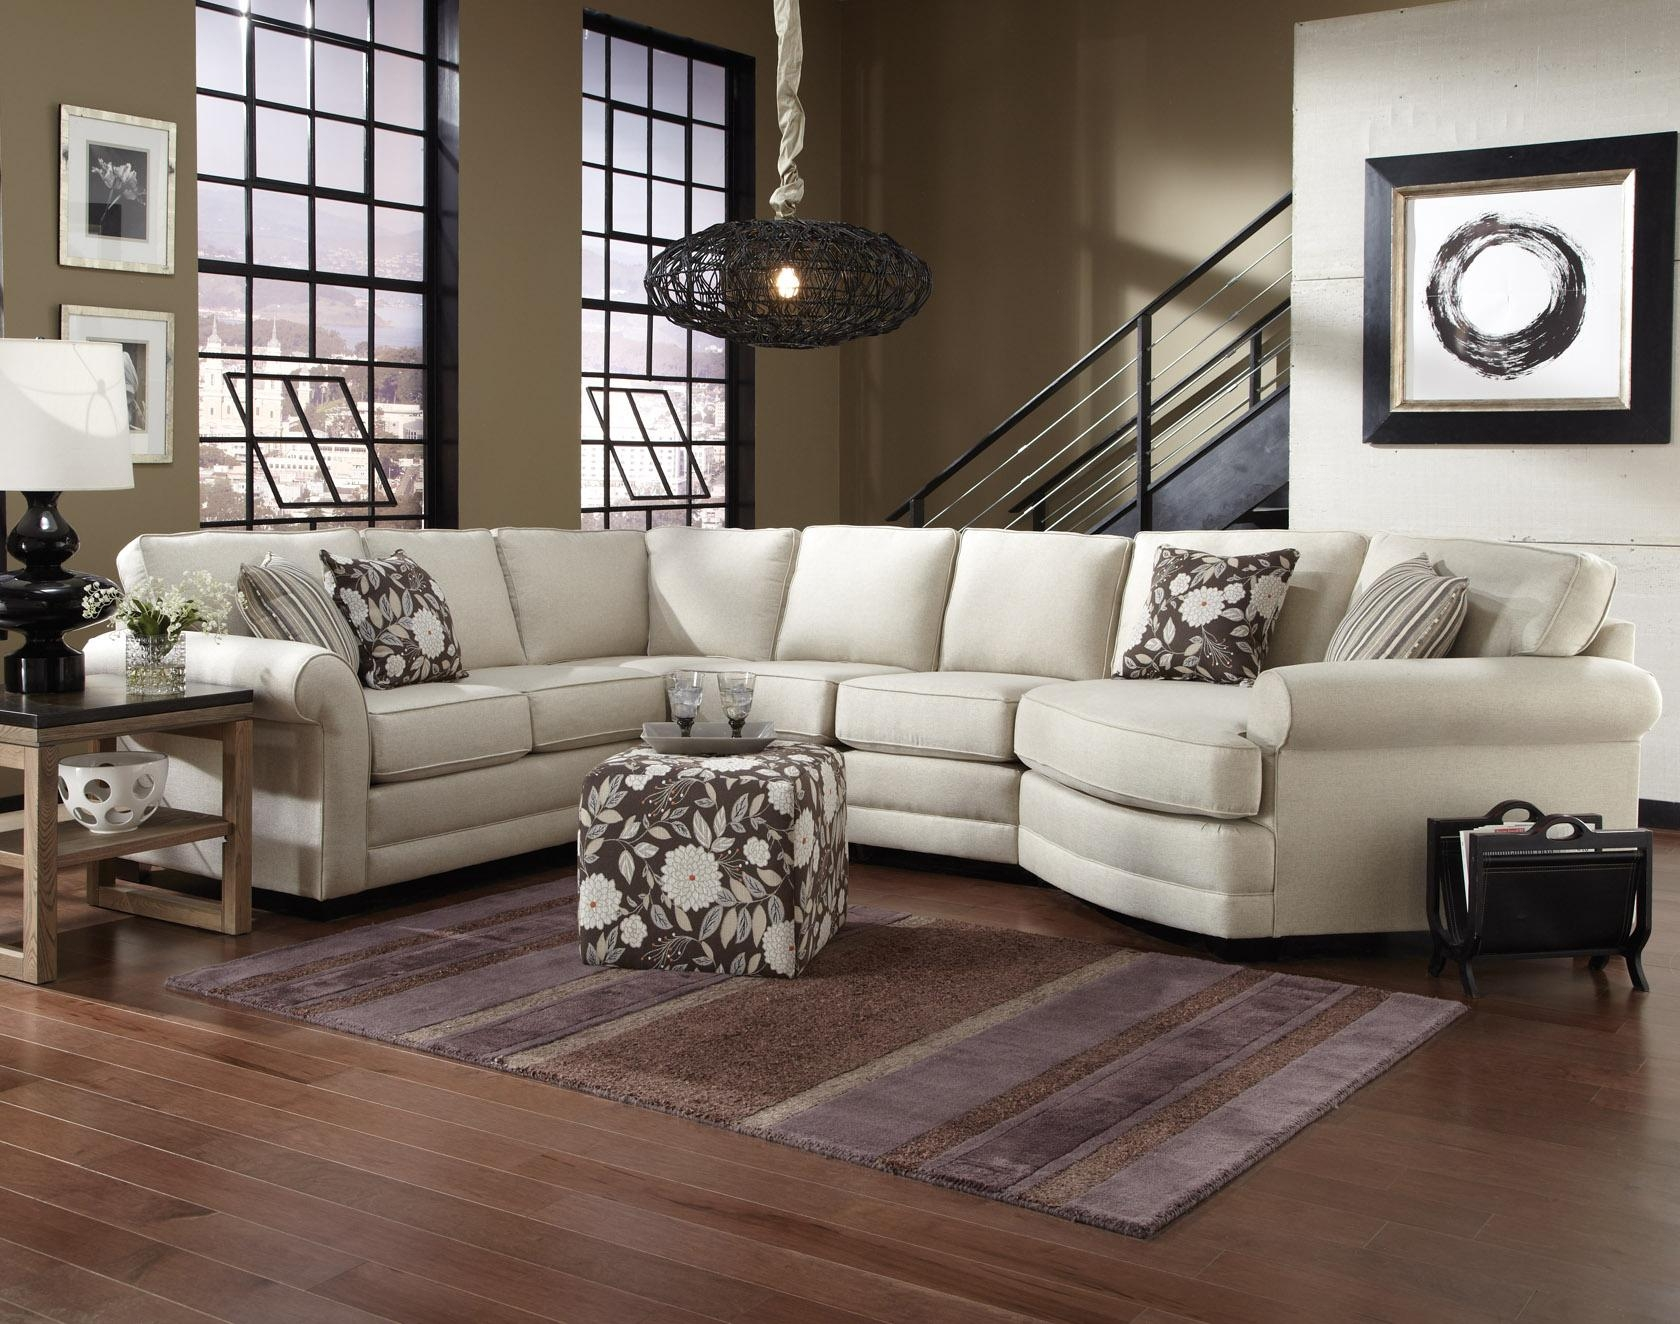 Rowe My Style I Ii Transitional Sectional Sofa With Turned Legs Within 7 Seat Sectional Sofa (View 10 of 12)